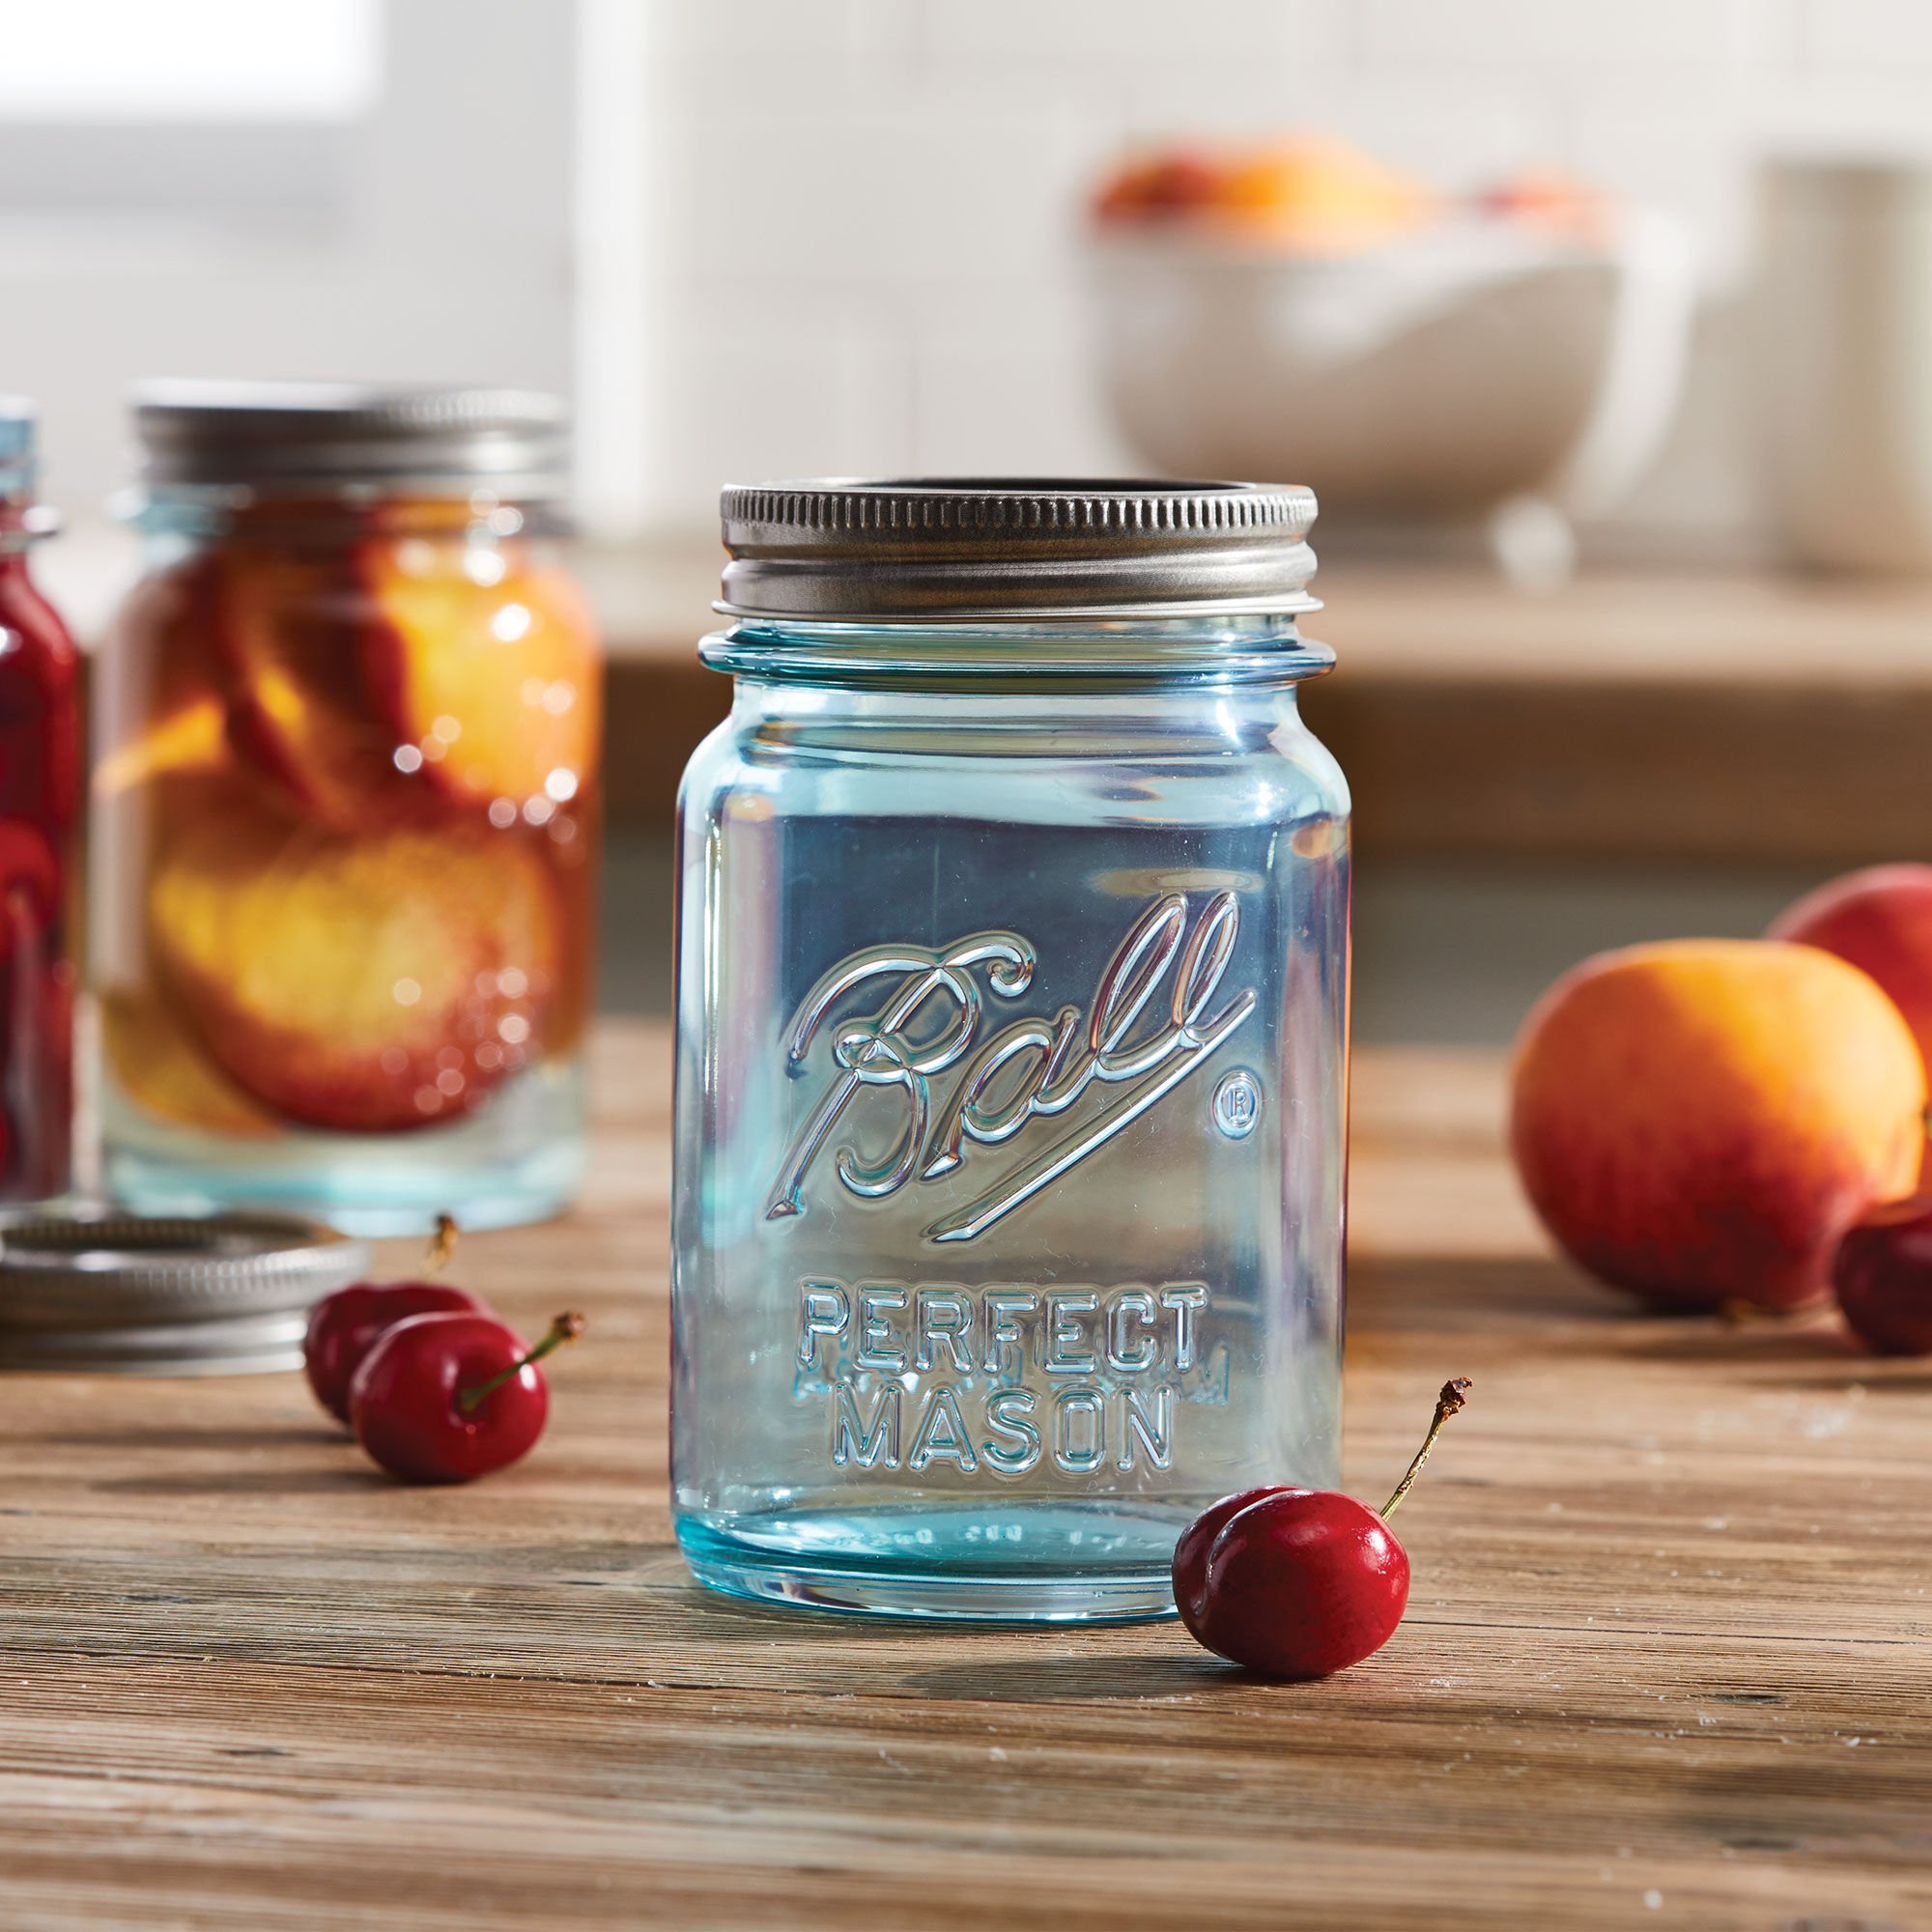 Calling All Canners: Ball Just Released a Line of Vintage Aqua Mason Jars and They're Beautiful